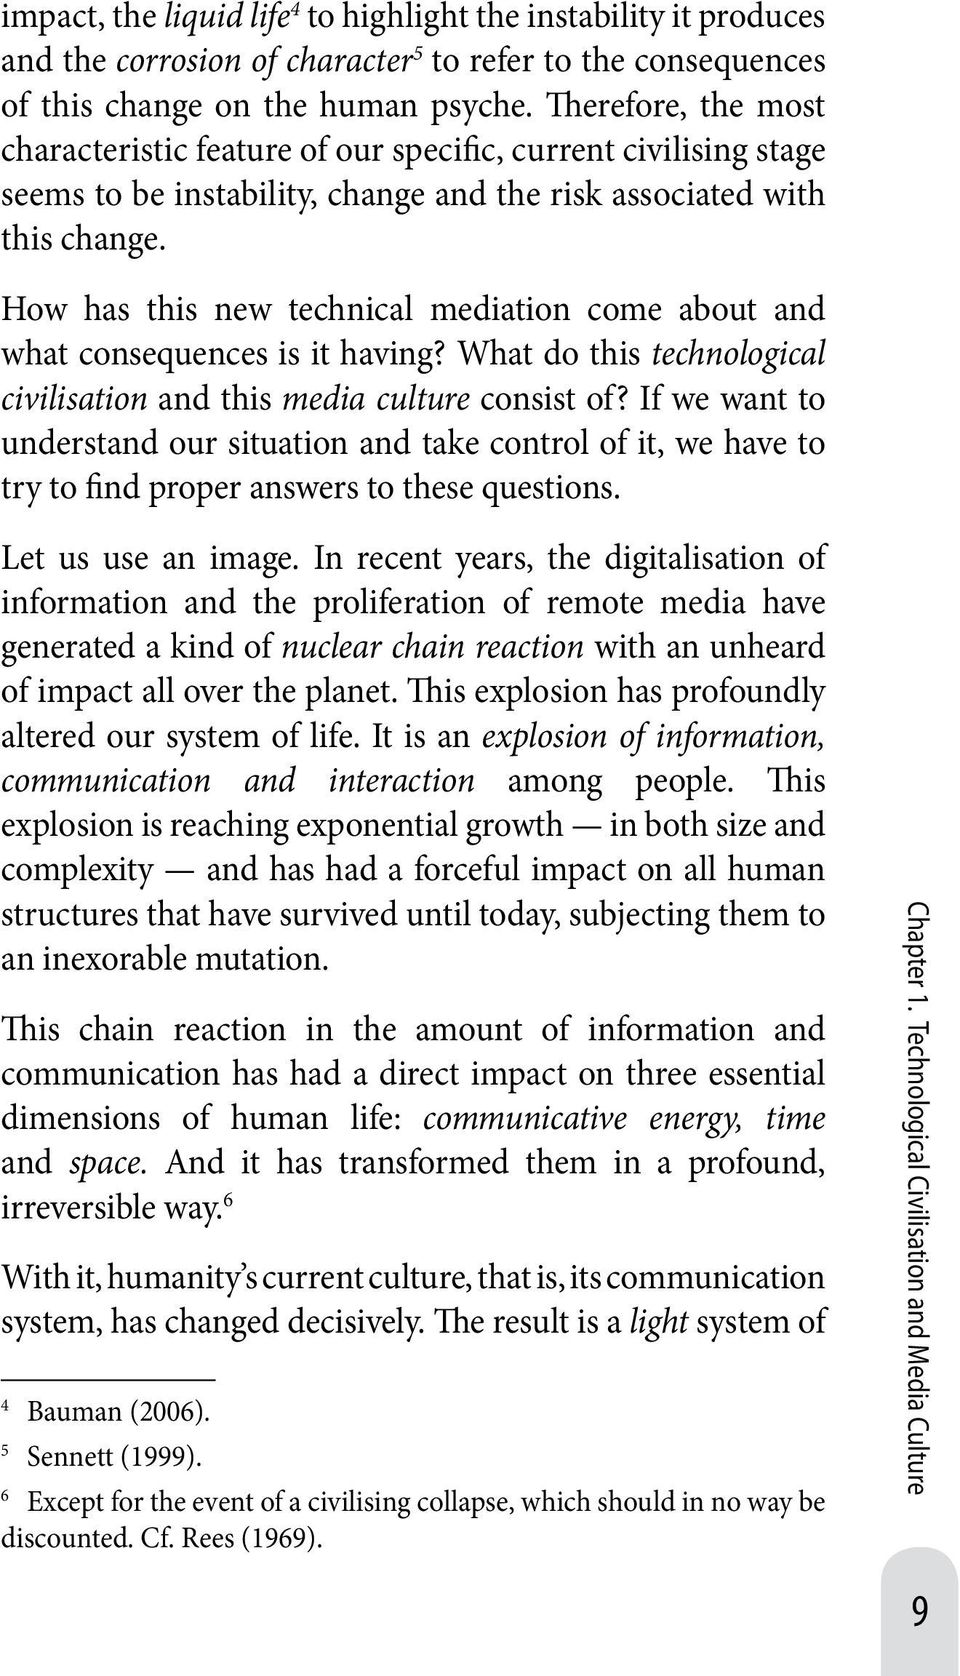 How has this new technical mediation come about and what consequences is it having? What do this technological civilisation and this media culture consist of?